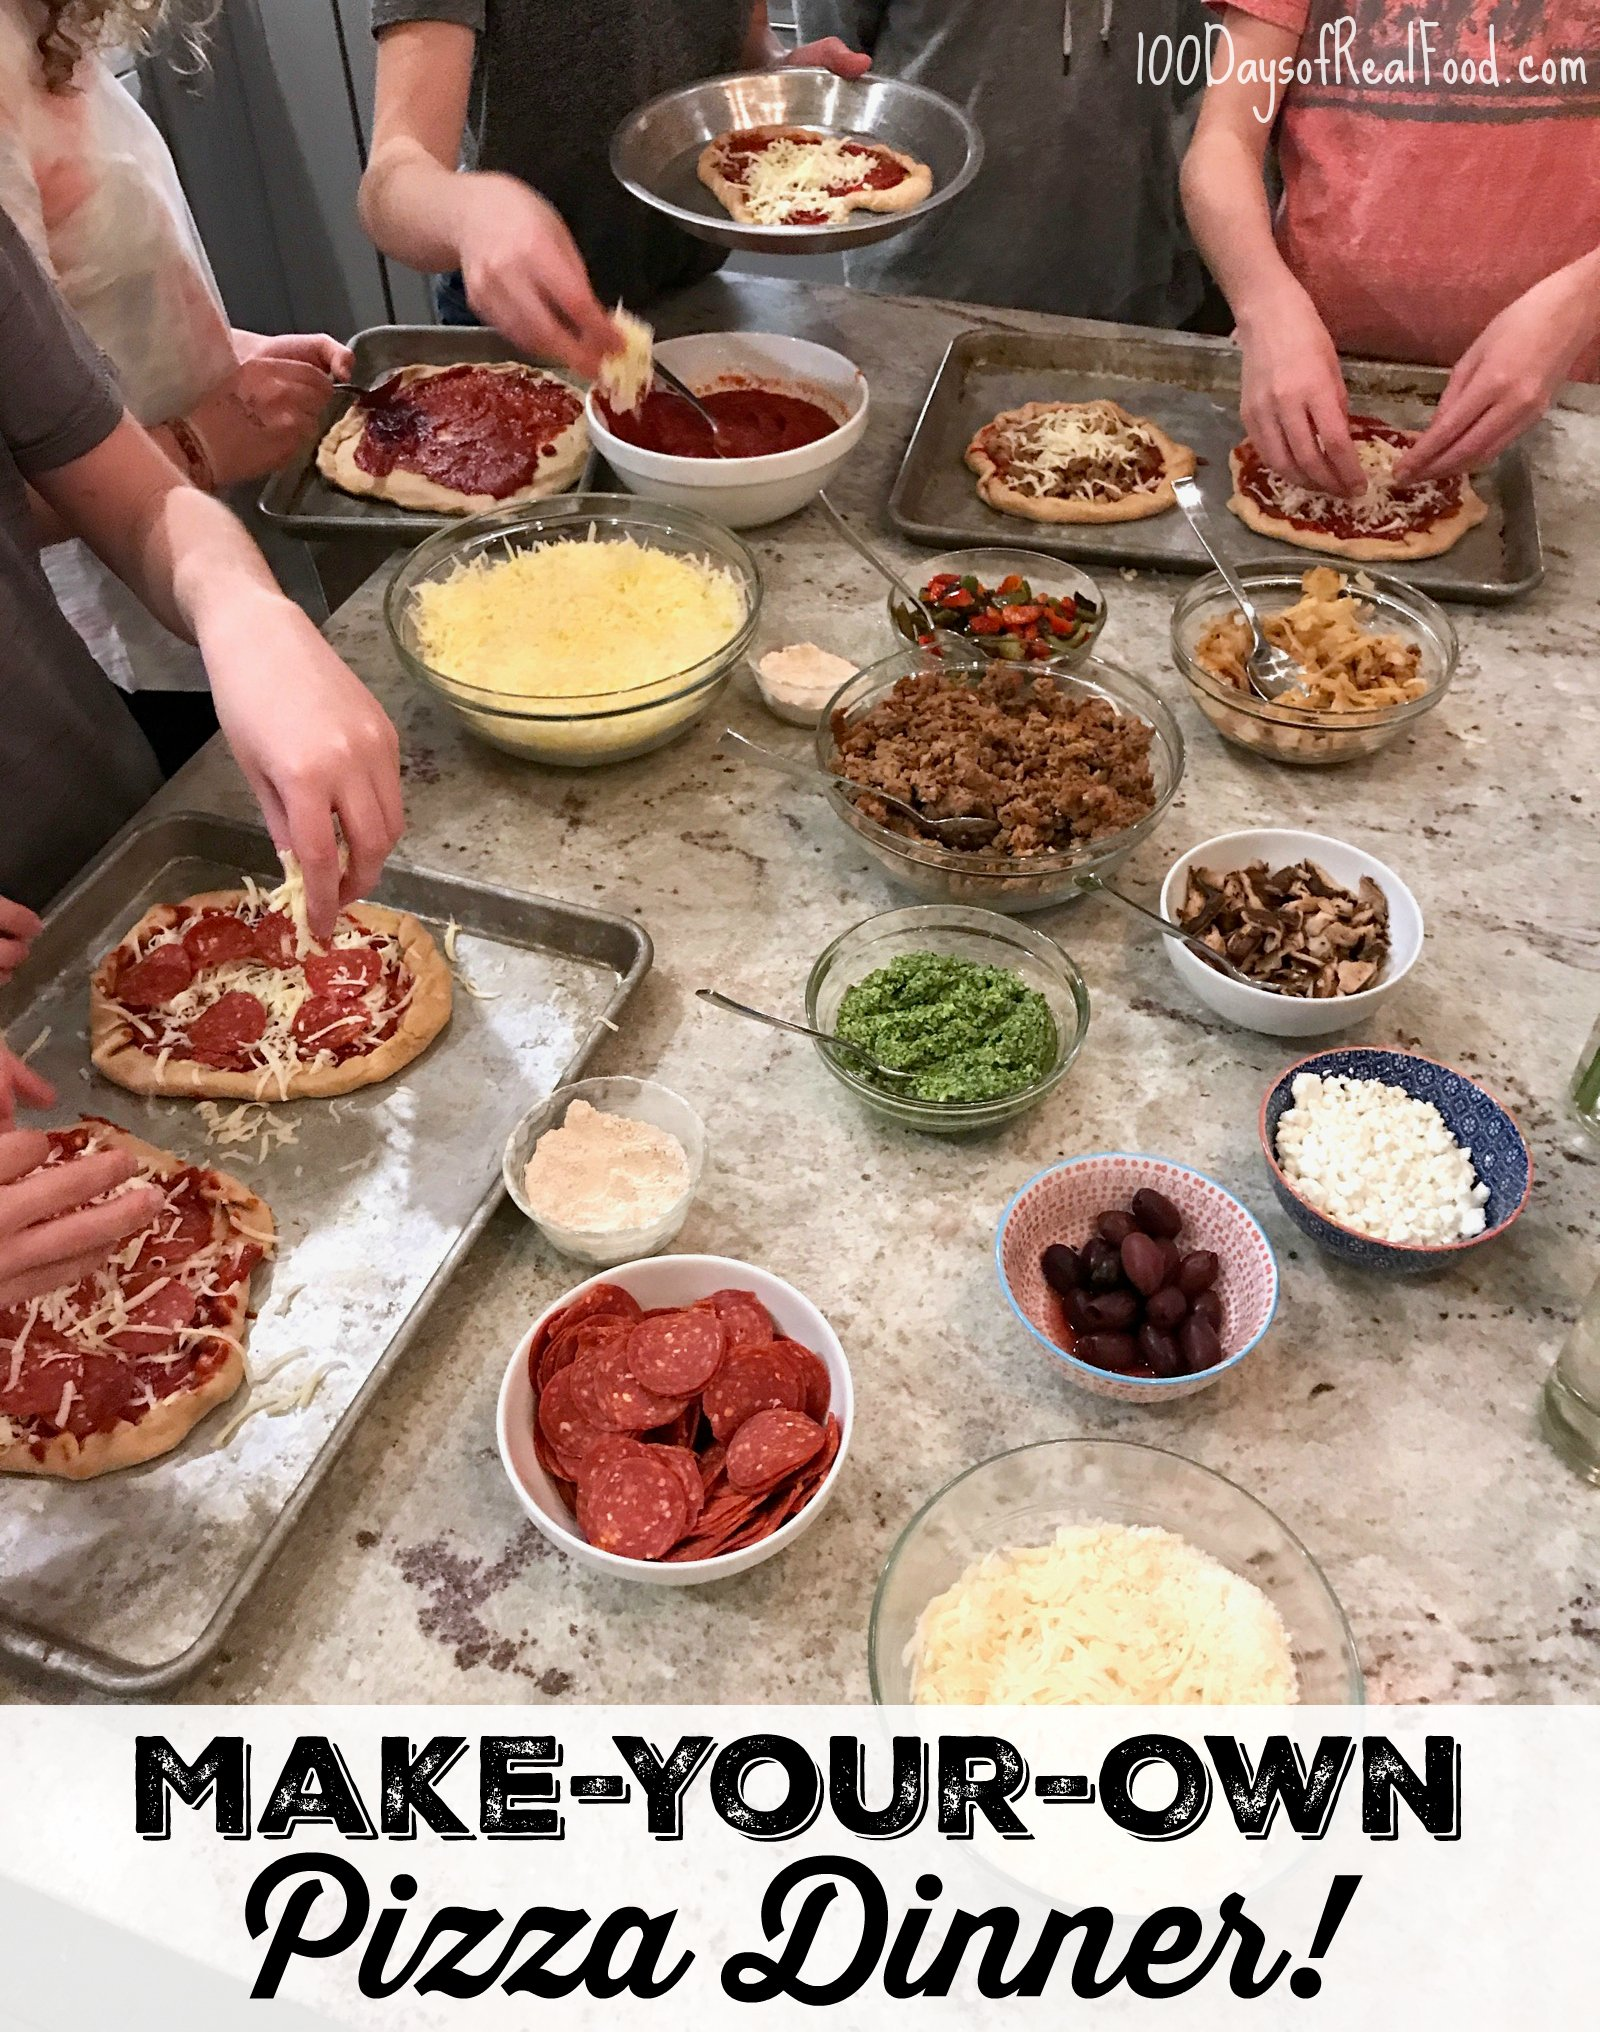 Make Your Own Pizza Dinner on 100 Days of Real Food